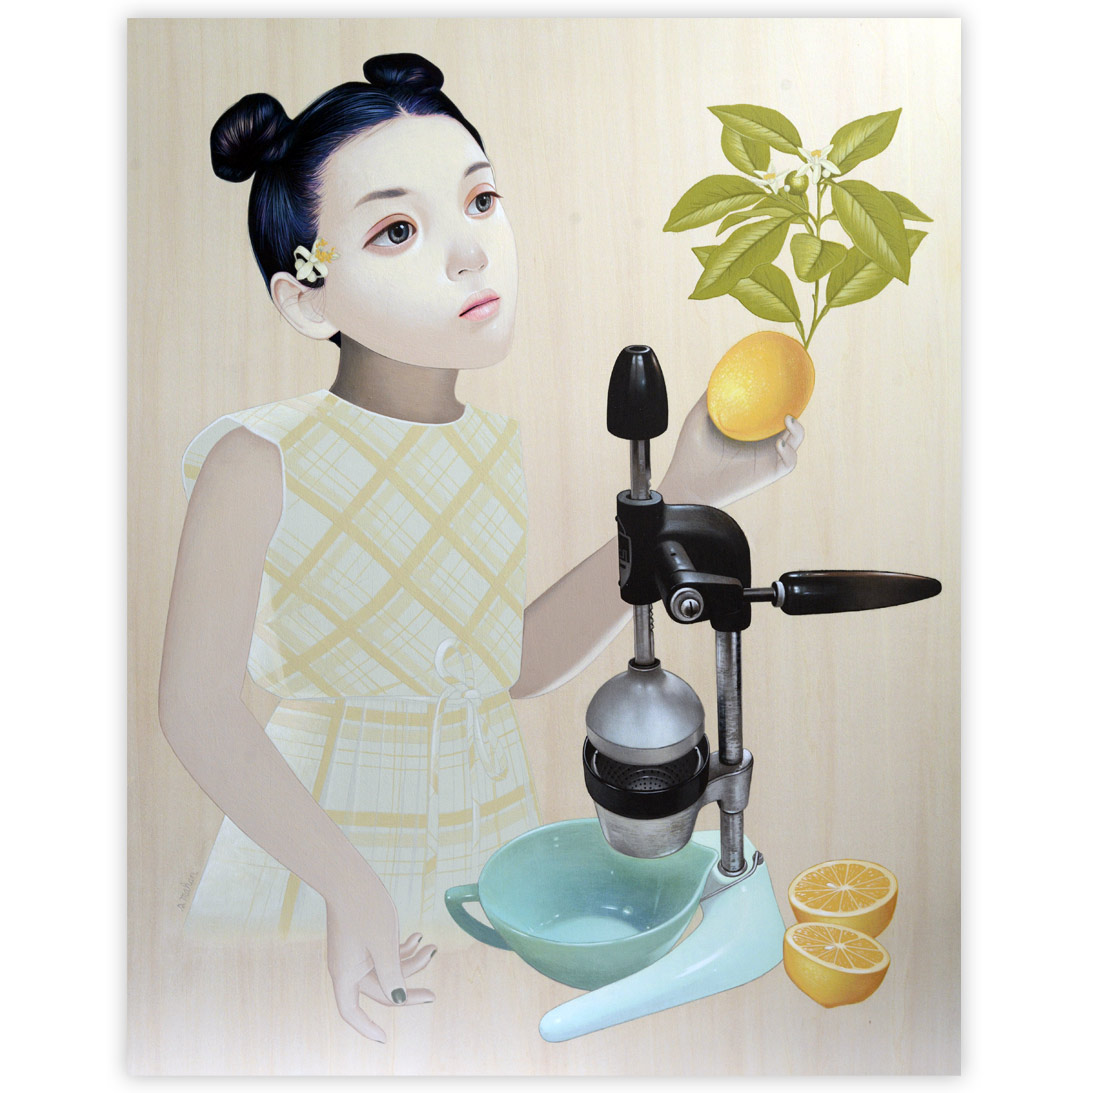 Sean Mahan Girl and Juicer 16 x 20 Inches Acrylic on wood panel  SOLD